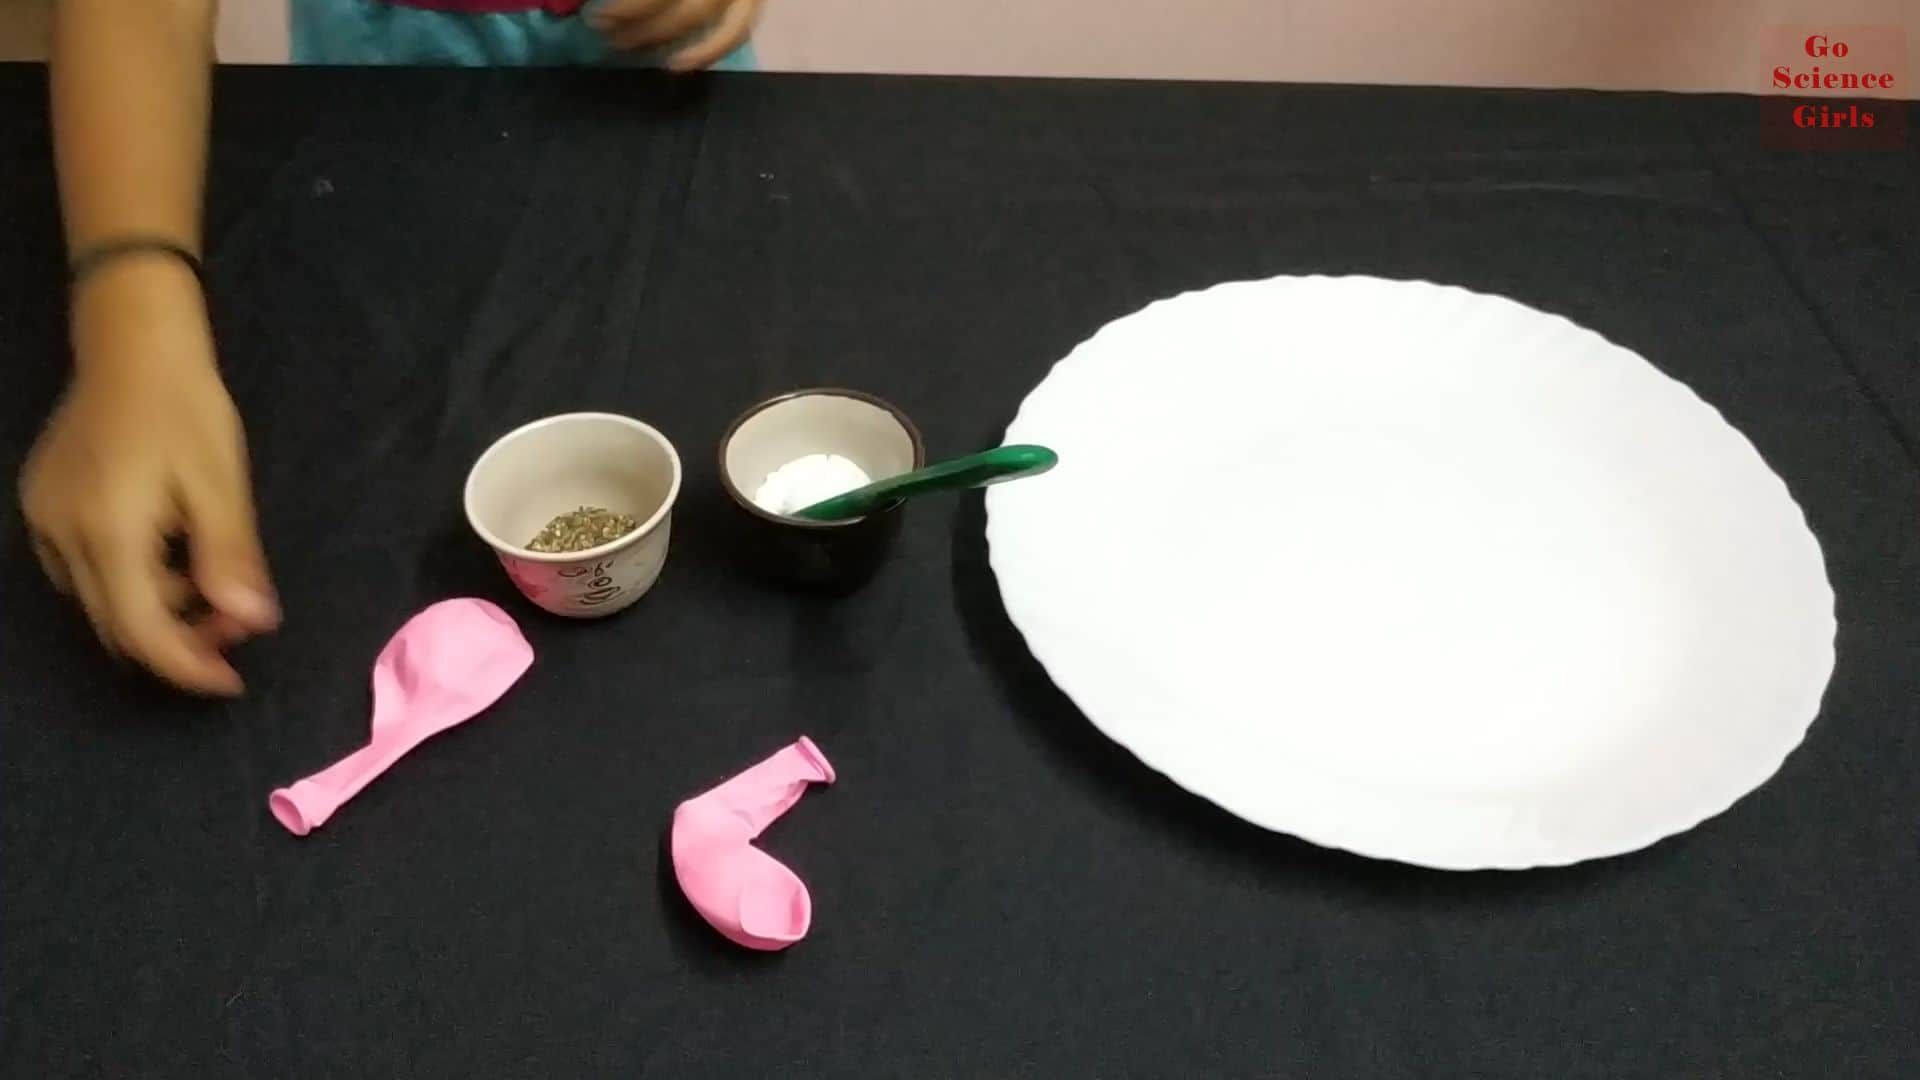 Things We Need For Salt and Pepper and Balloon Experiment